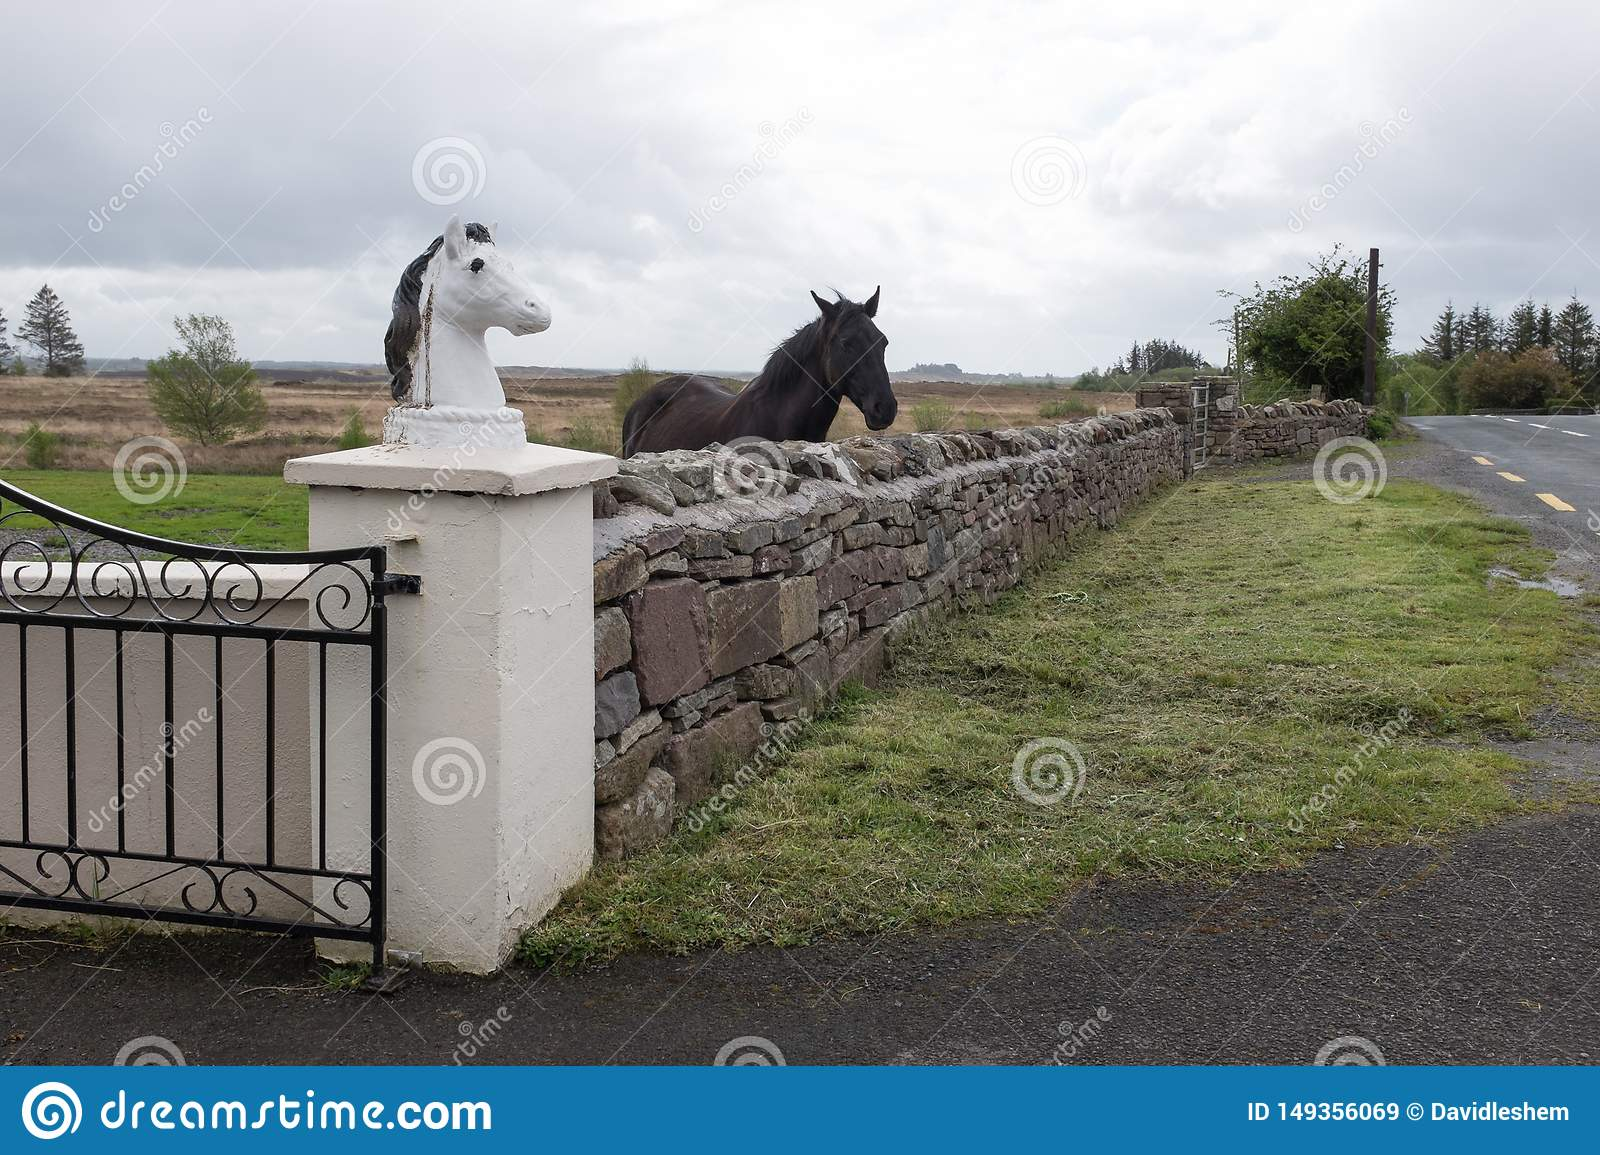 1 602 Horse Humor Photos Free Royalty Free Stock Photos From Dreamstime